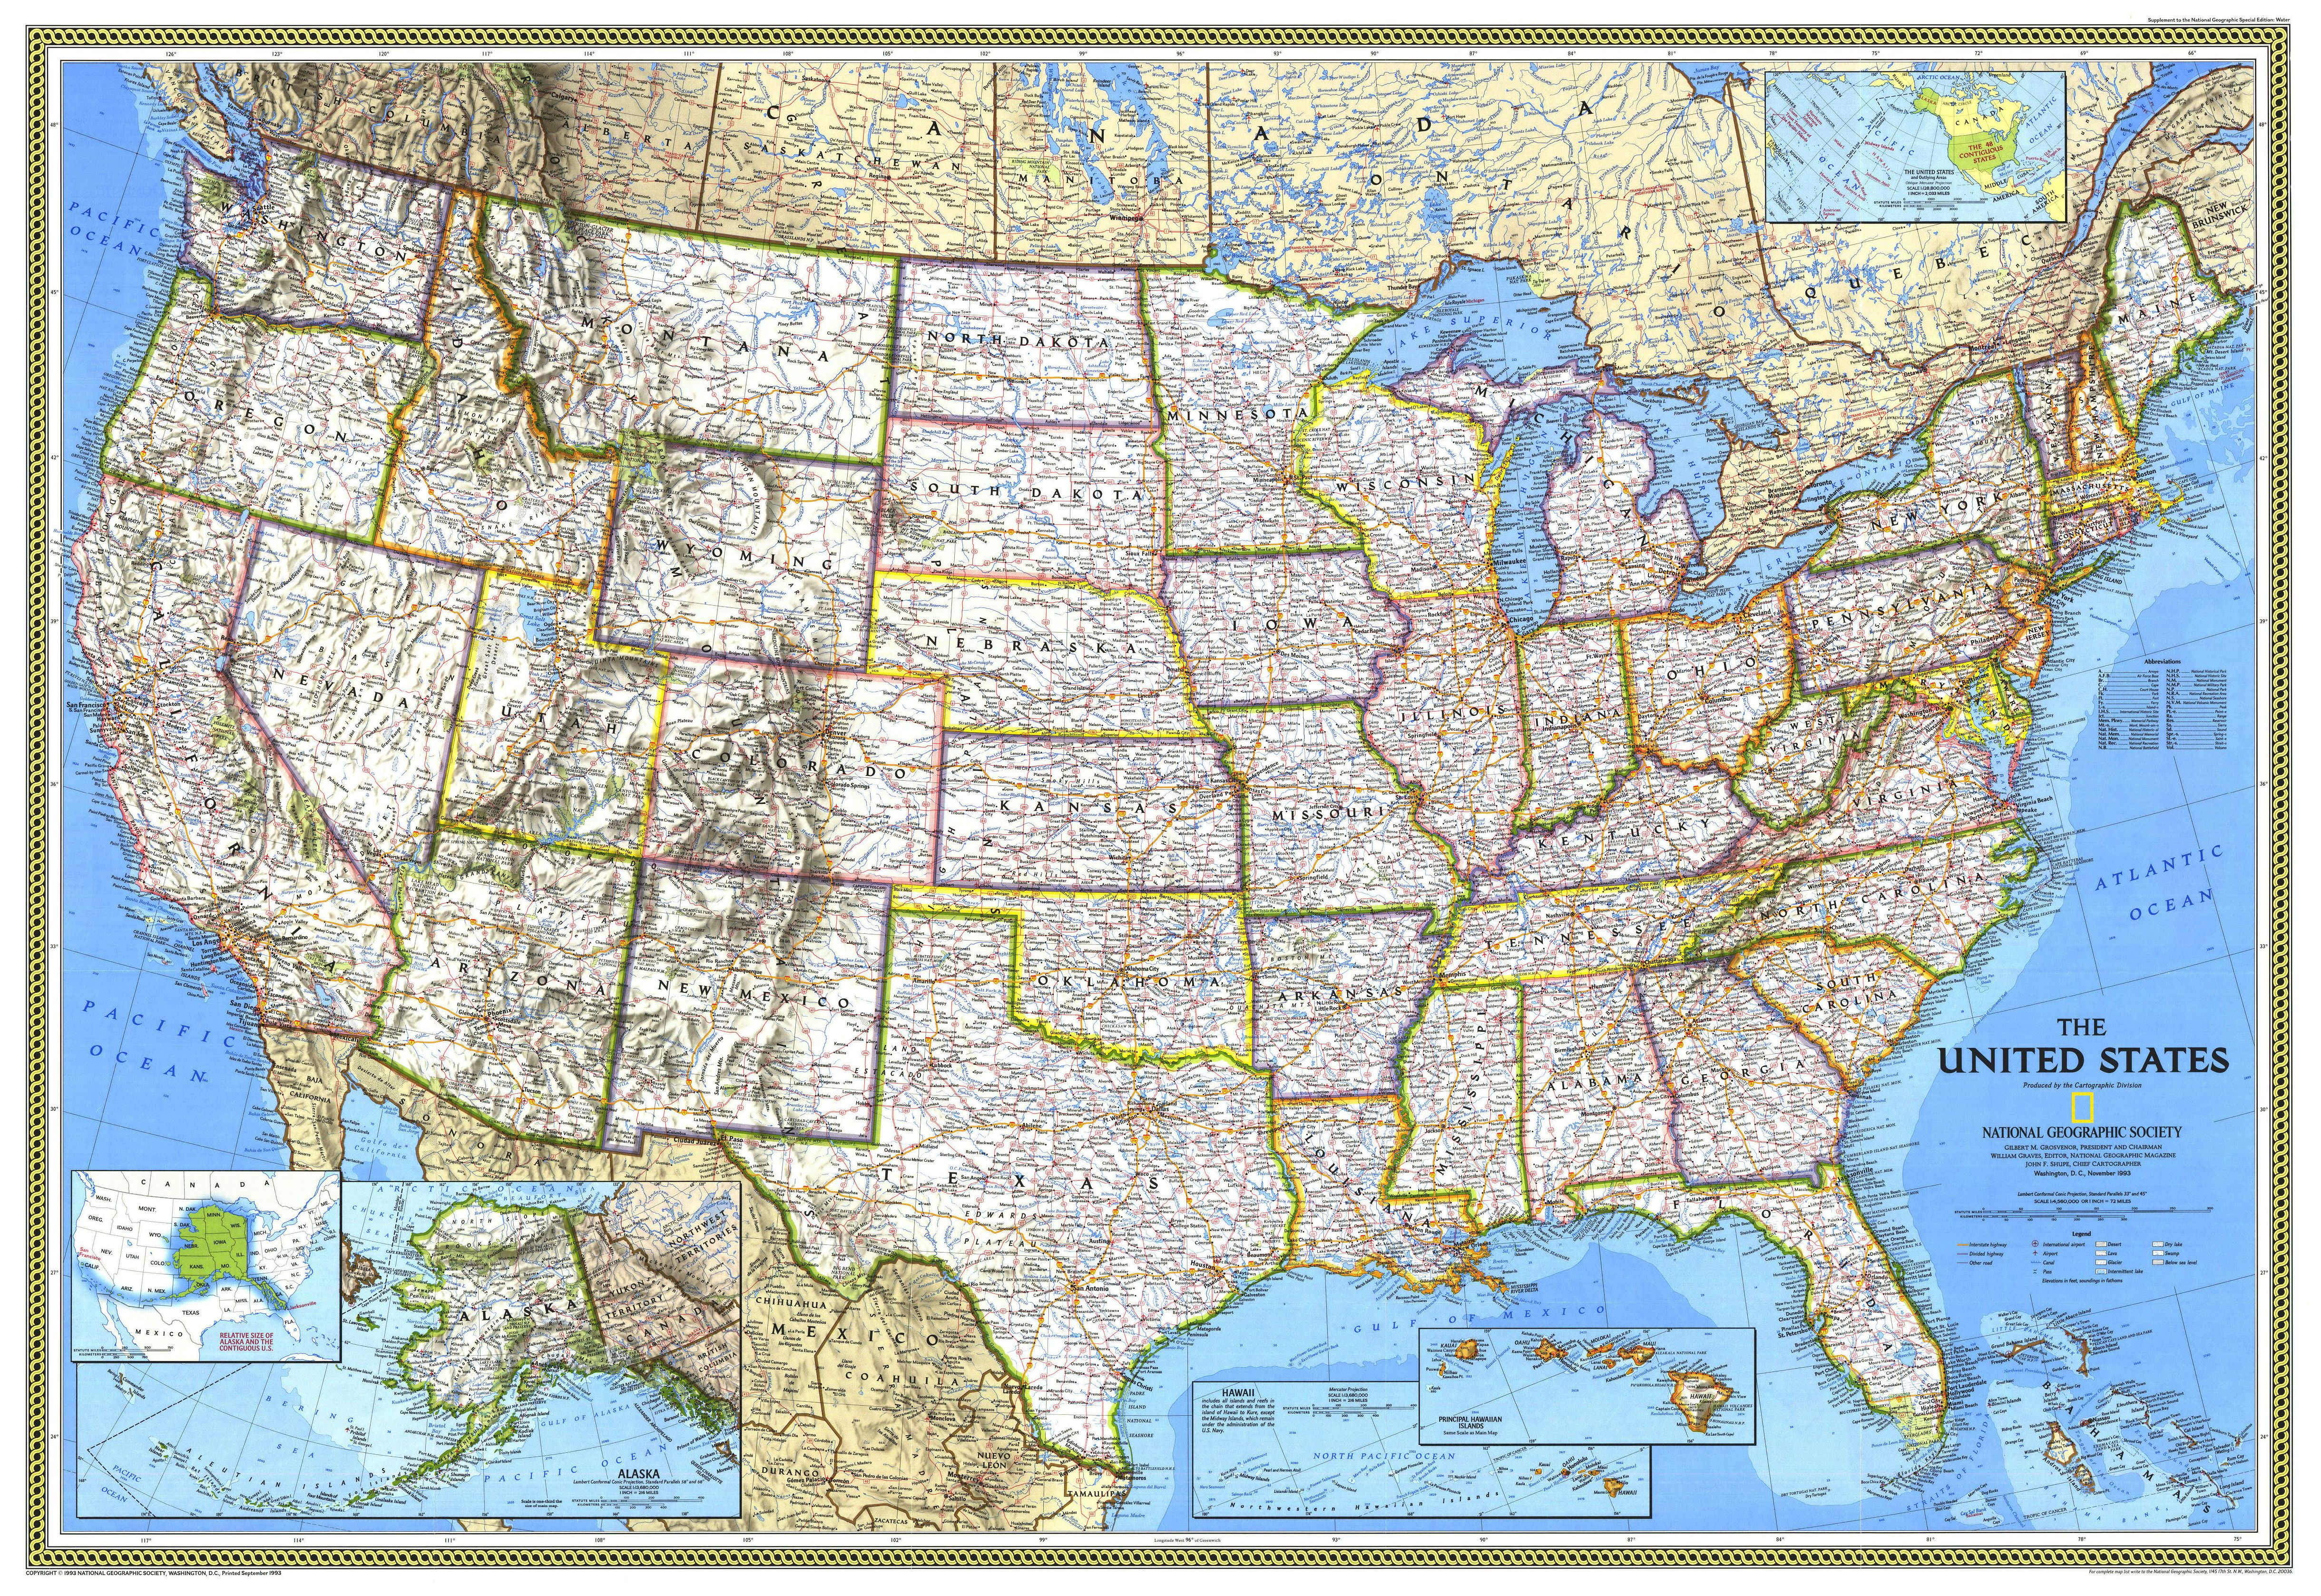 united states national geographic map   Google Search | Walk